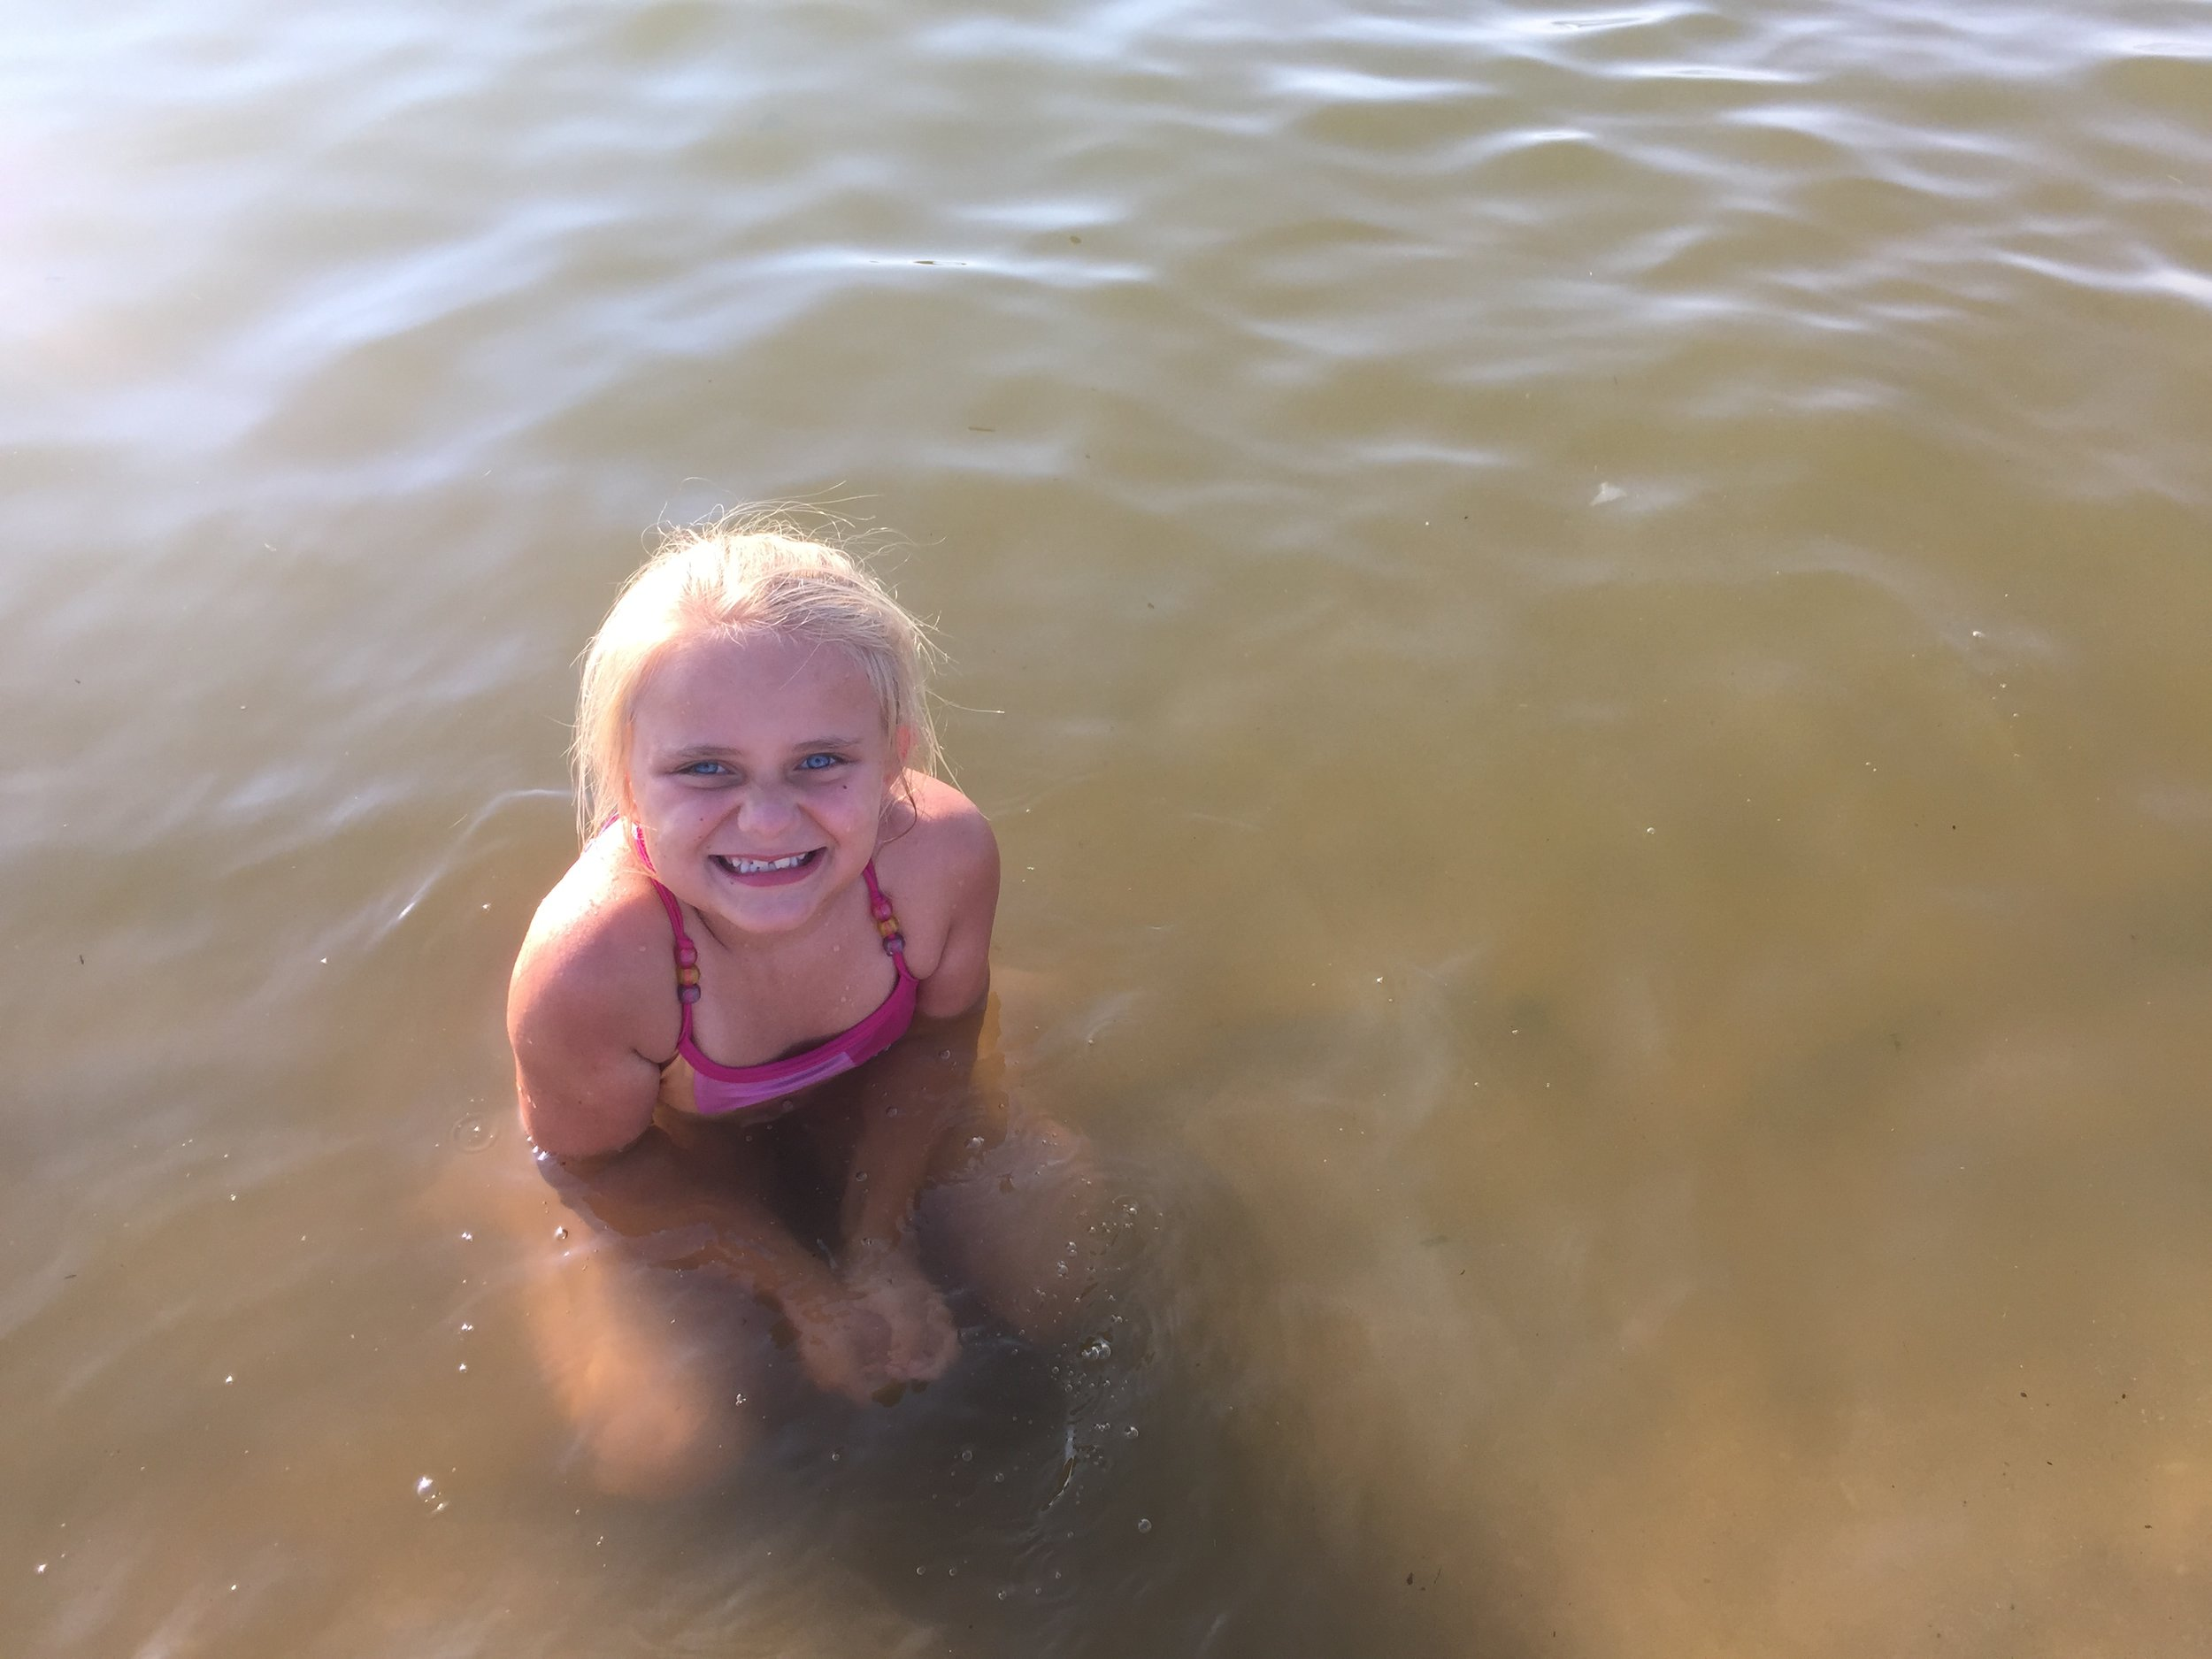 I'm a water baby - river, pool, sea or ocean - I'm in it!